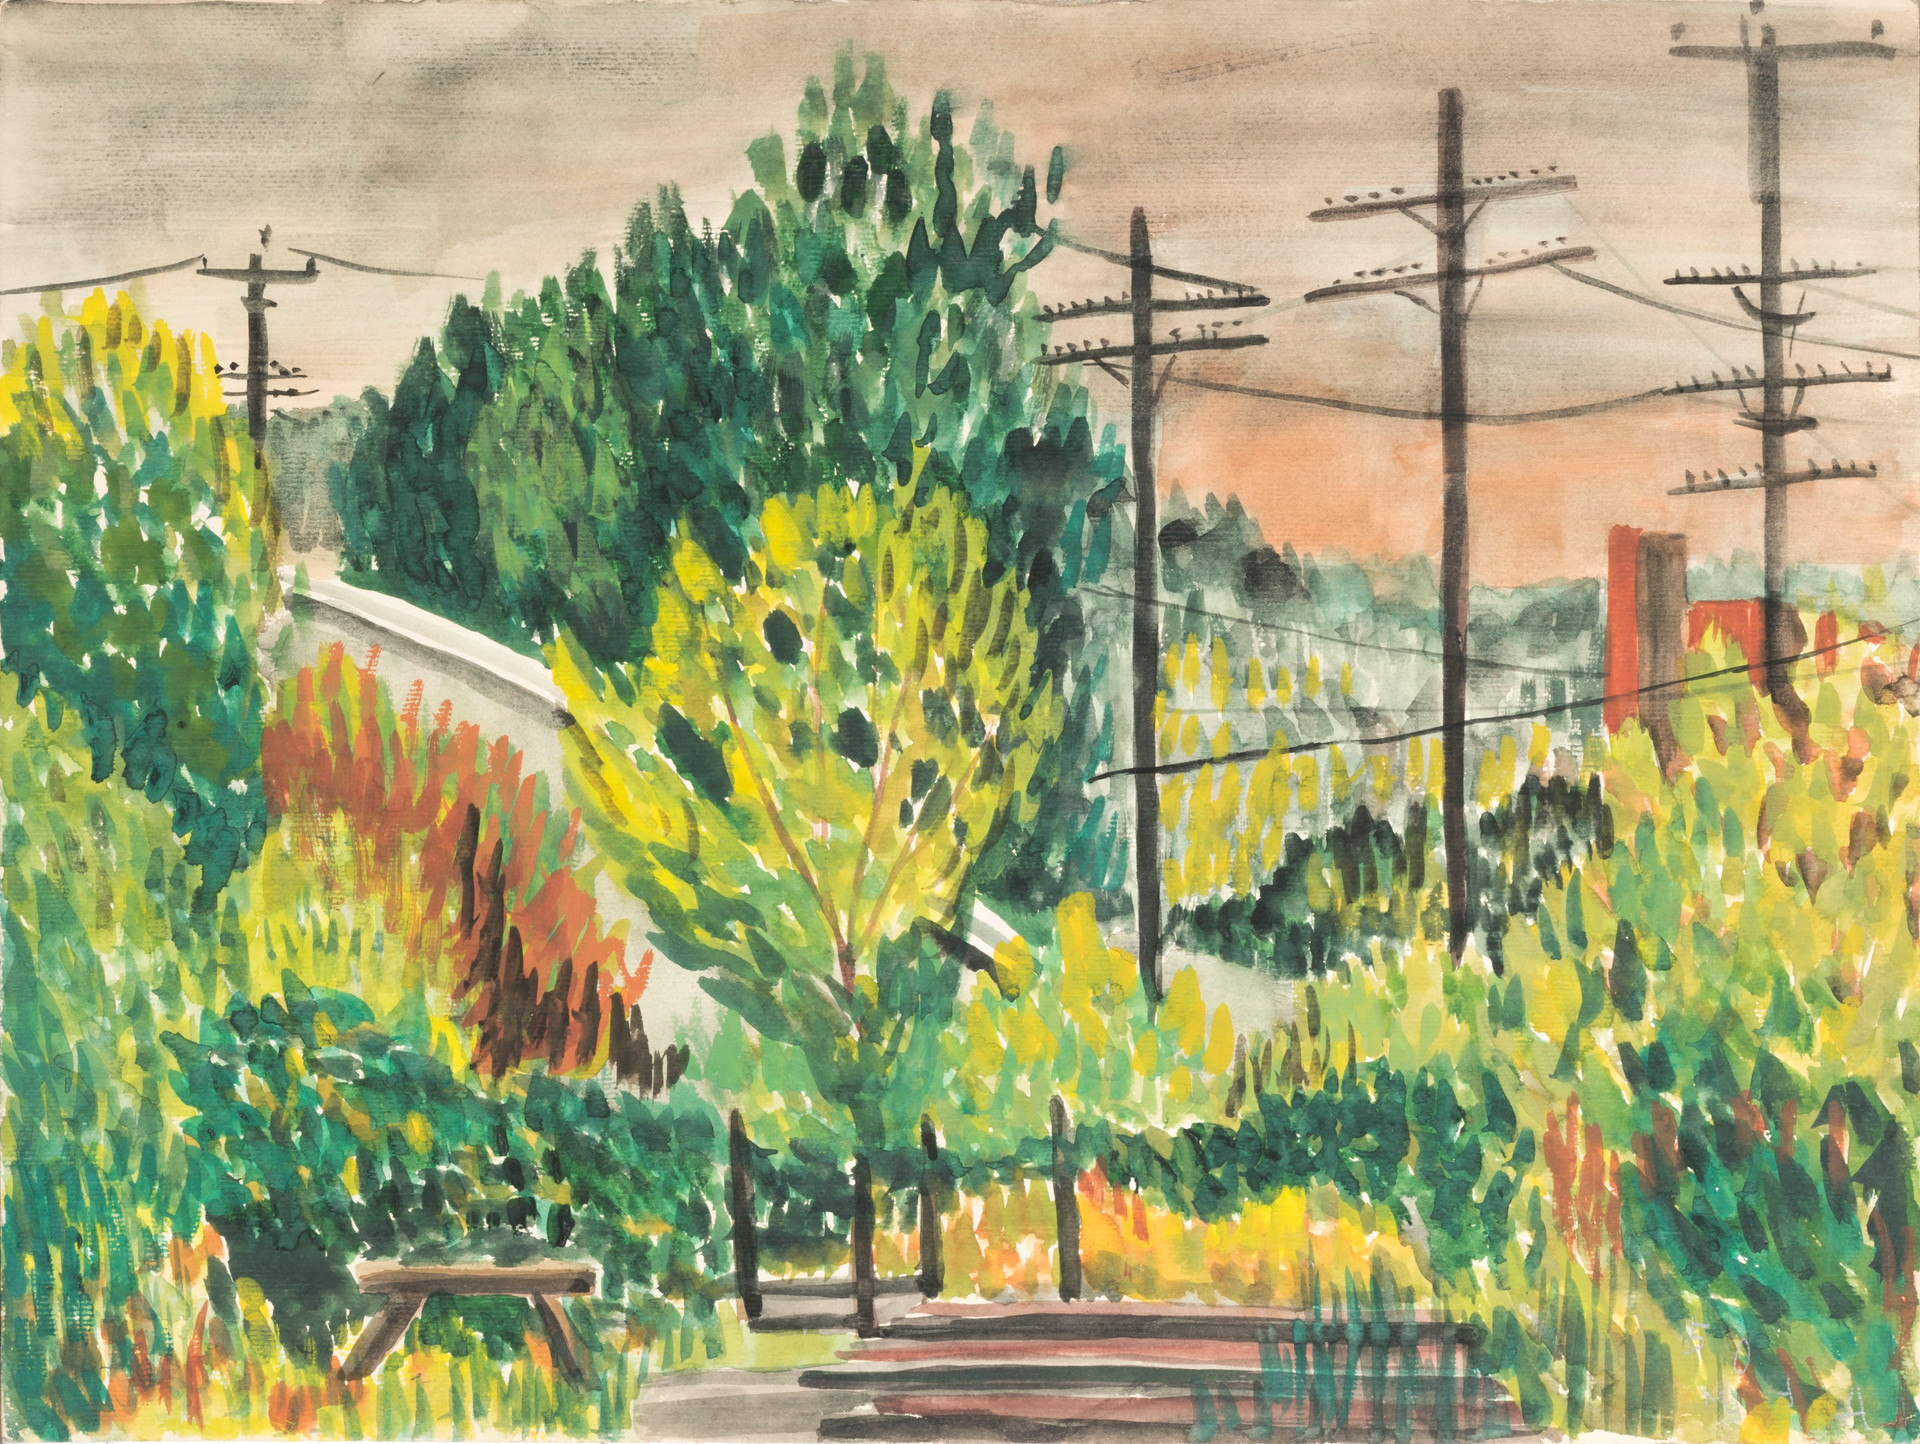 Untitled - green trees, gray house, bench and telephone poles